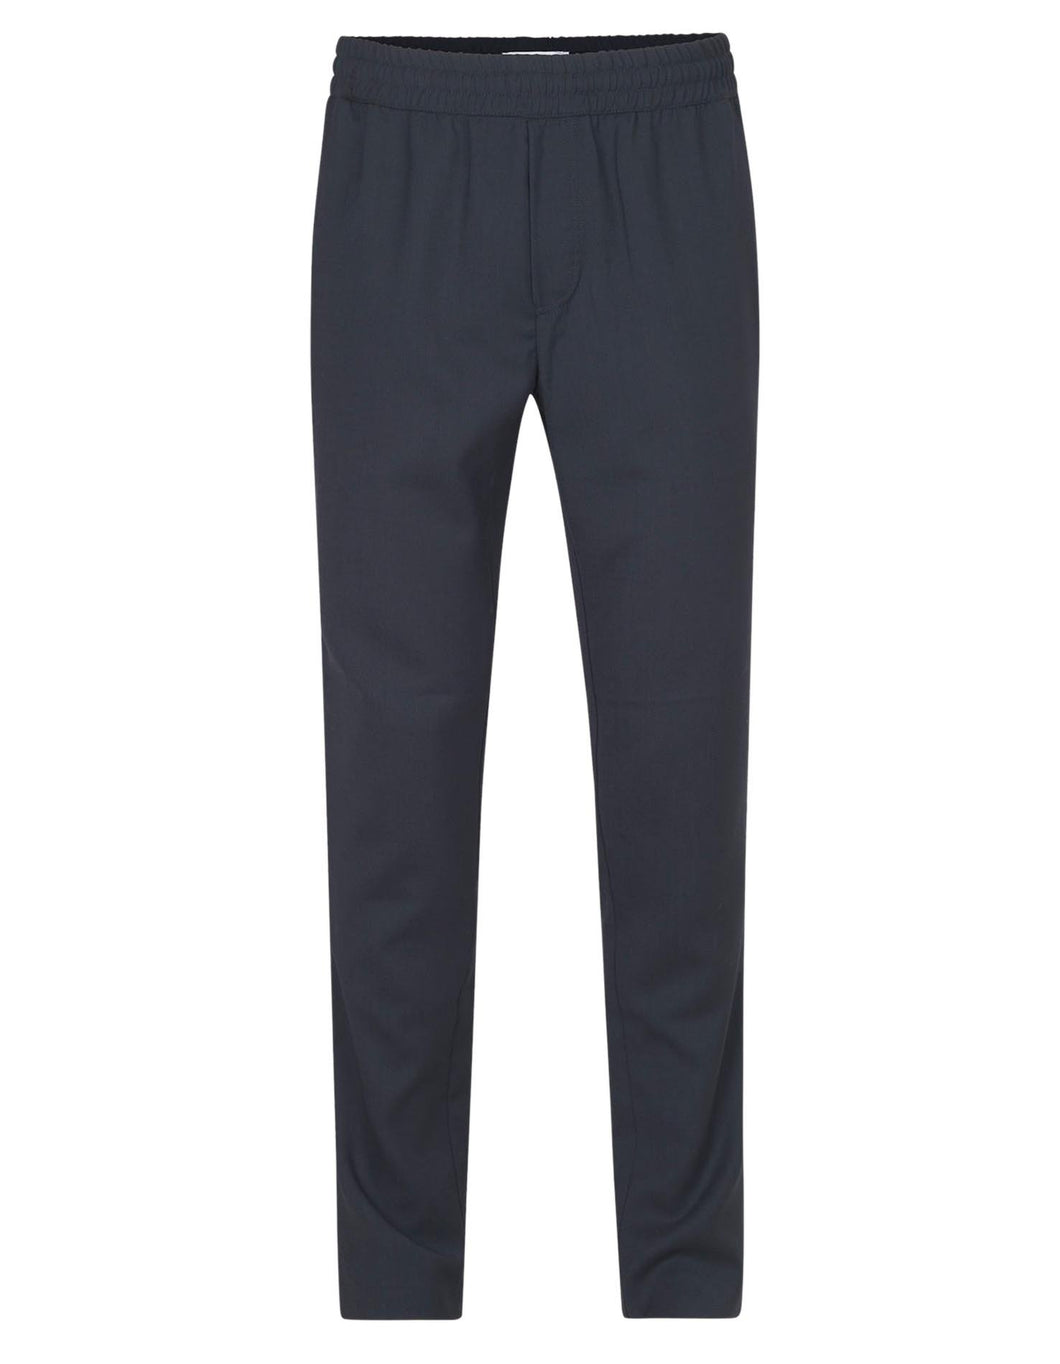 SMITH PANTS BLUE